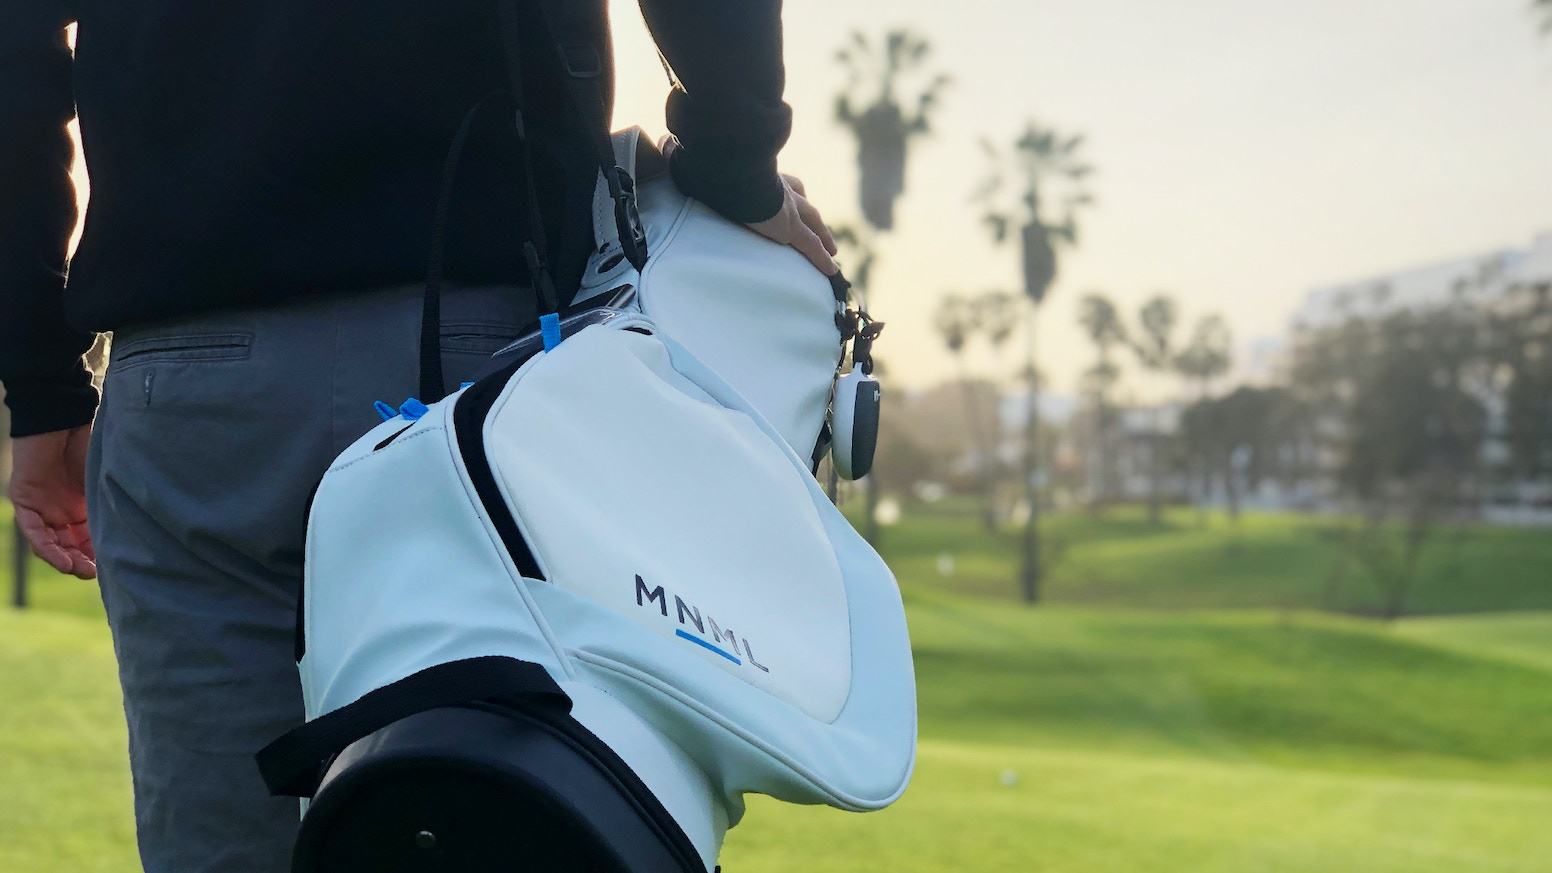 Minimalistic golf bag with patented system that integrates technology such as smart phone, bluetooth speaker, and solar battery pack.